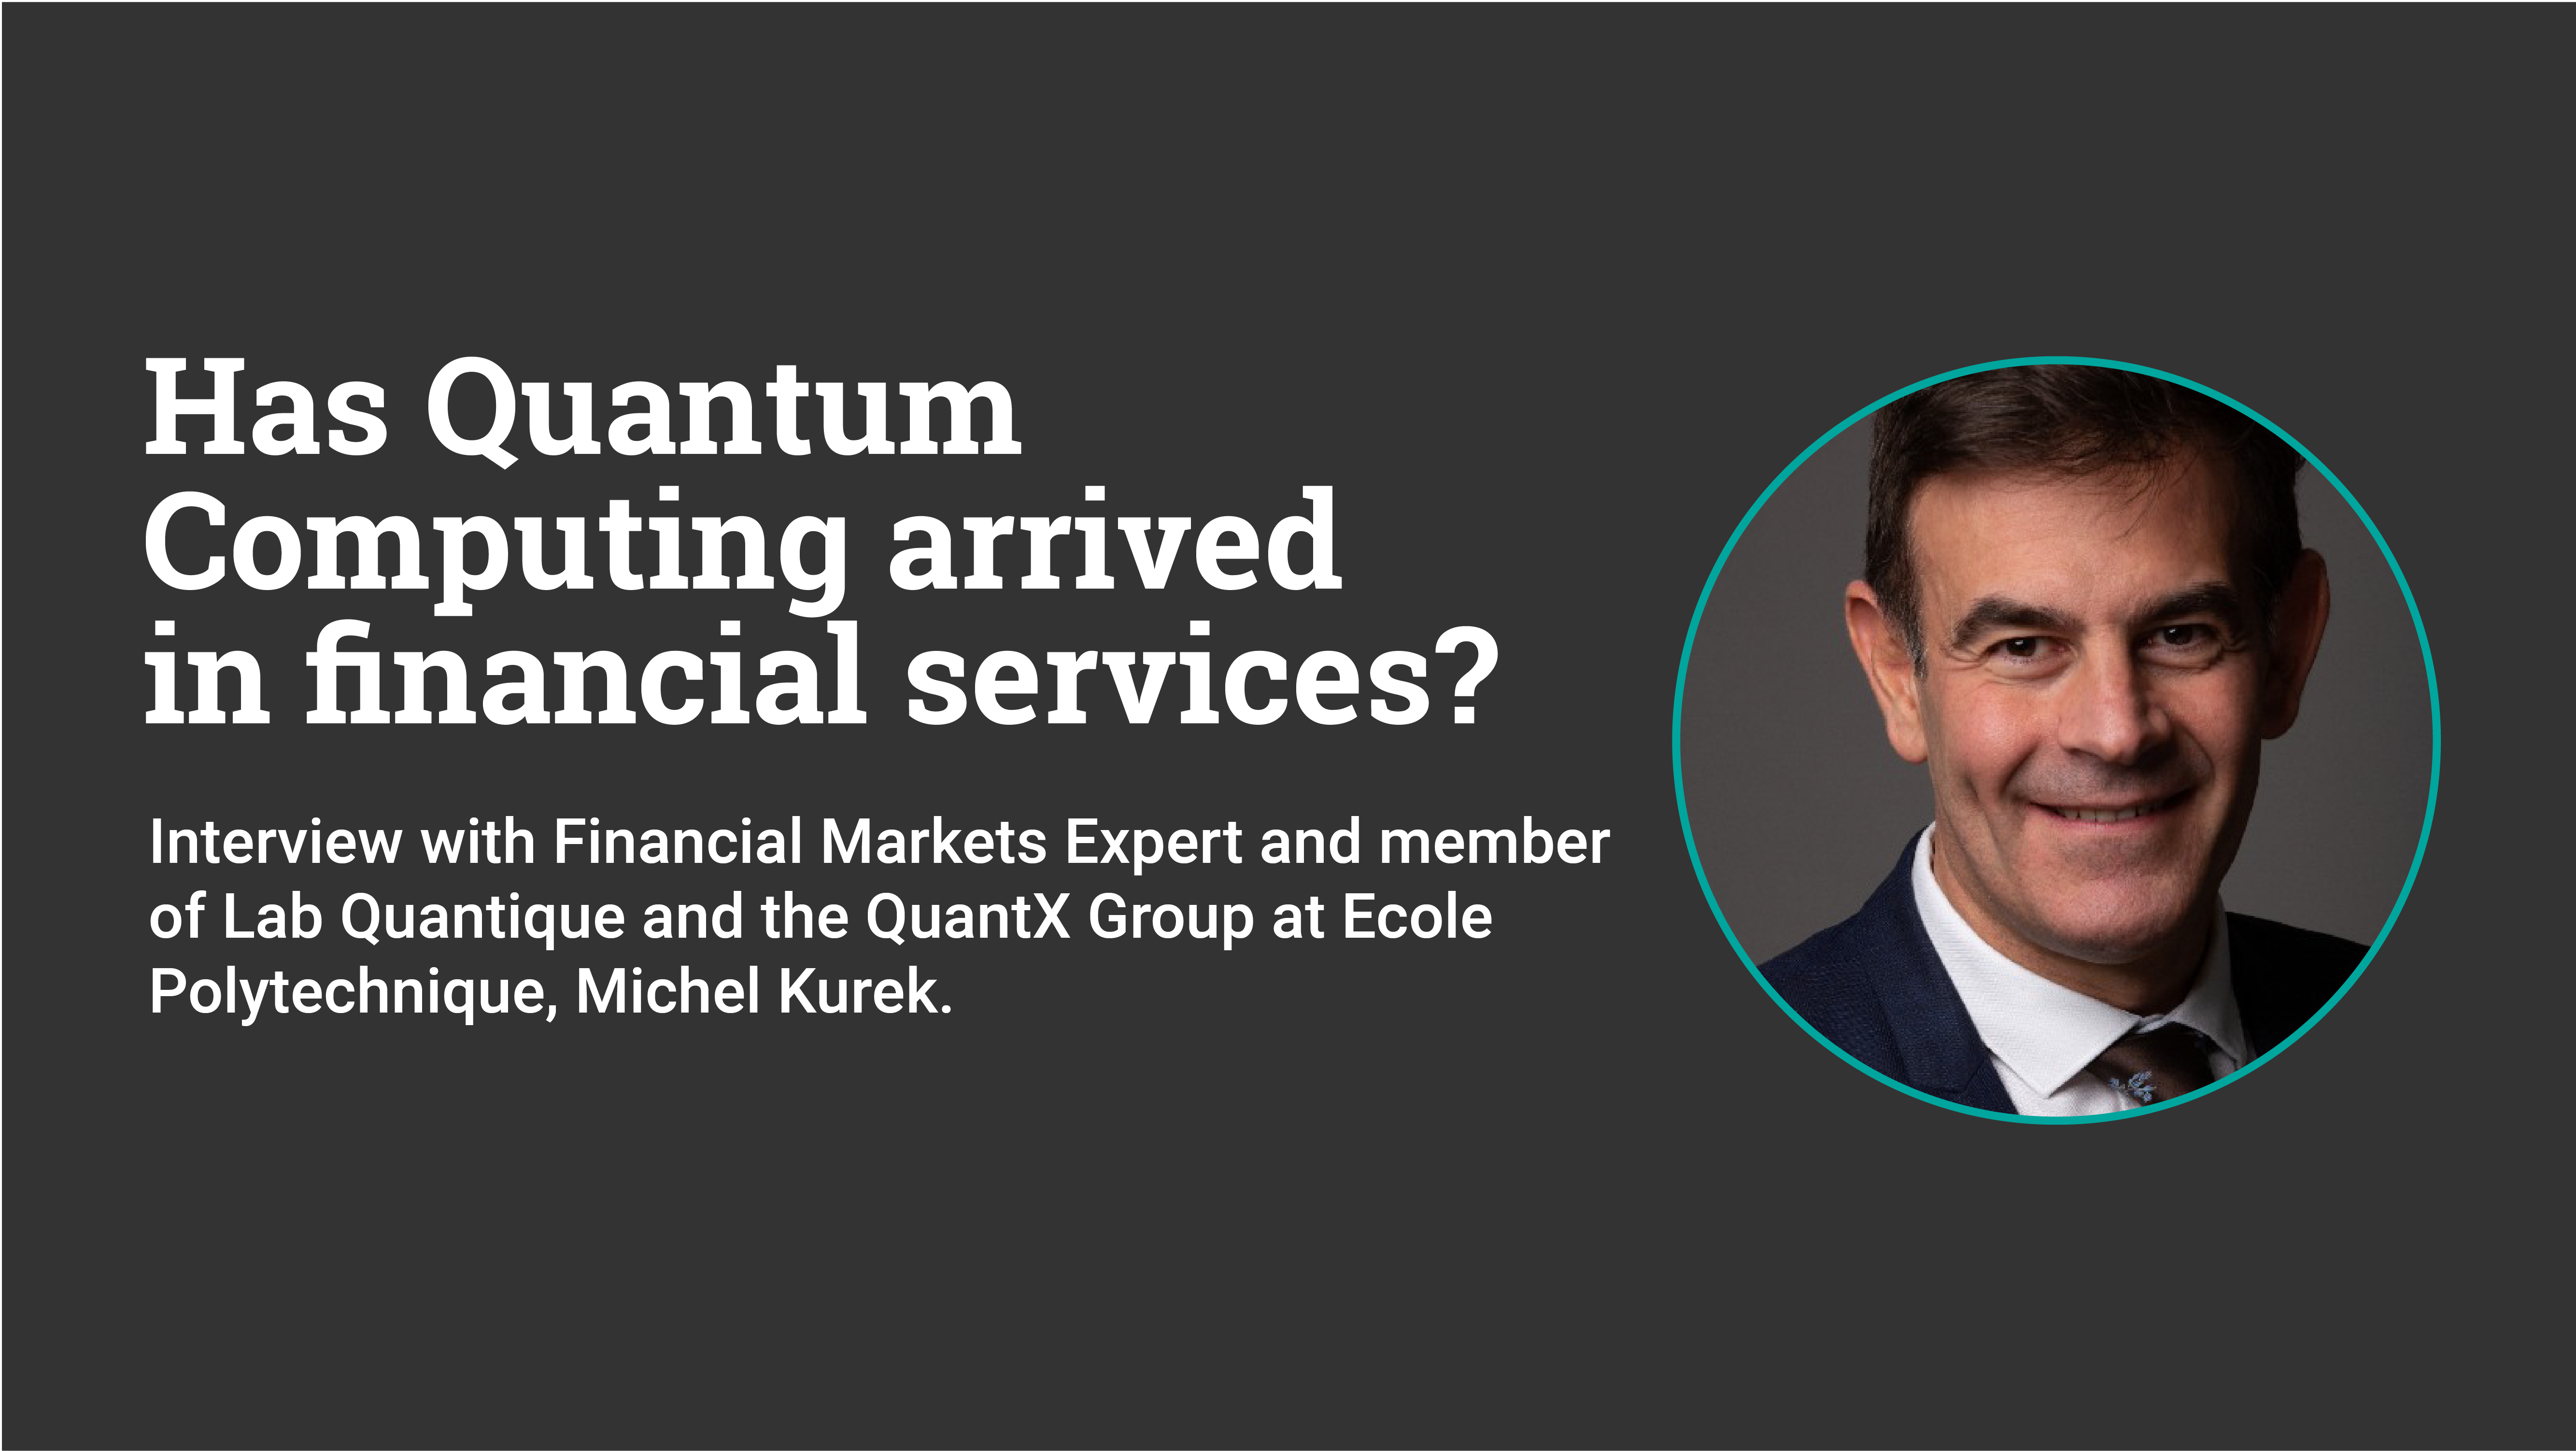 Has quantum computing arrived in financial markets?